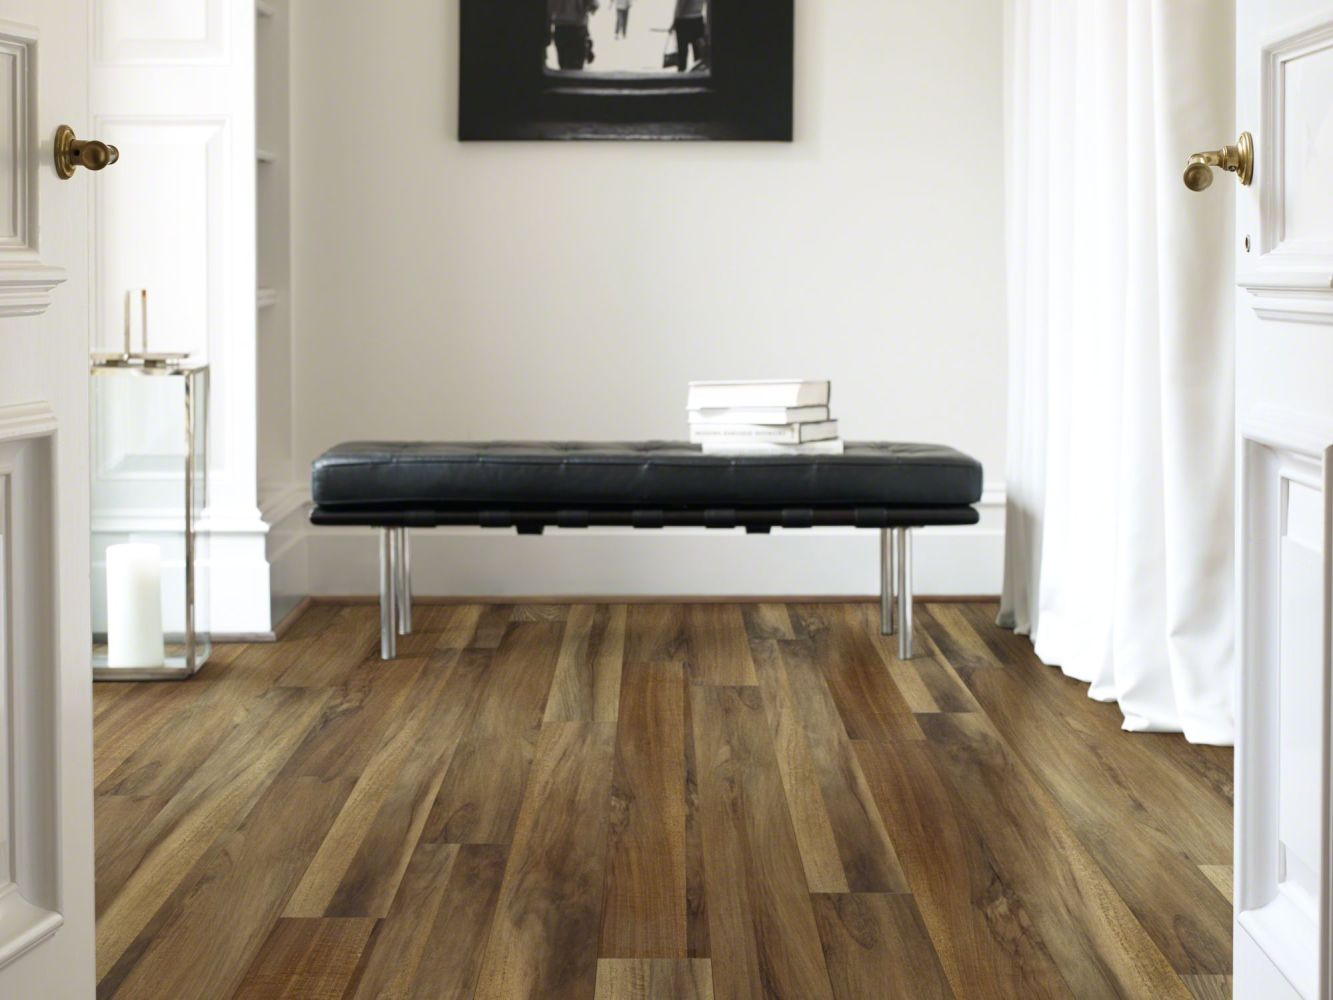 Shaw Floors Resilient Property Solutions Como Plus Plank Verona 00802_VE370